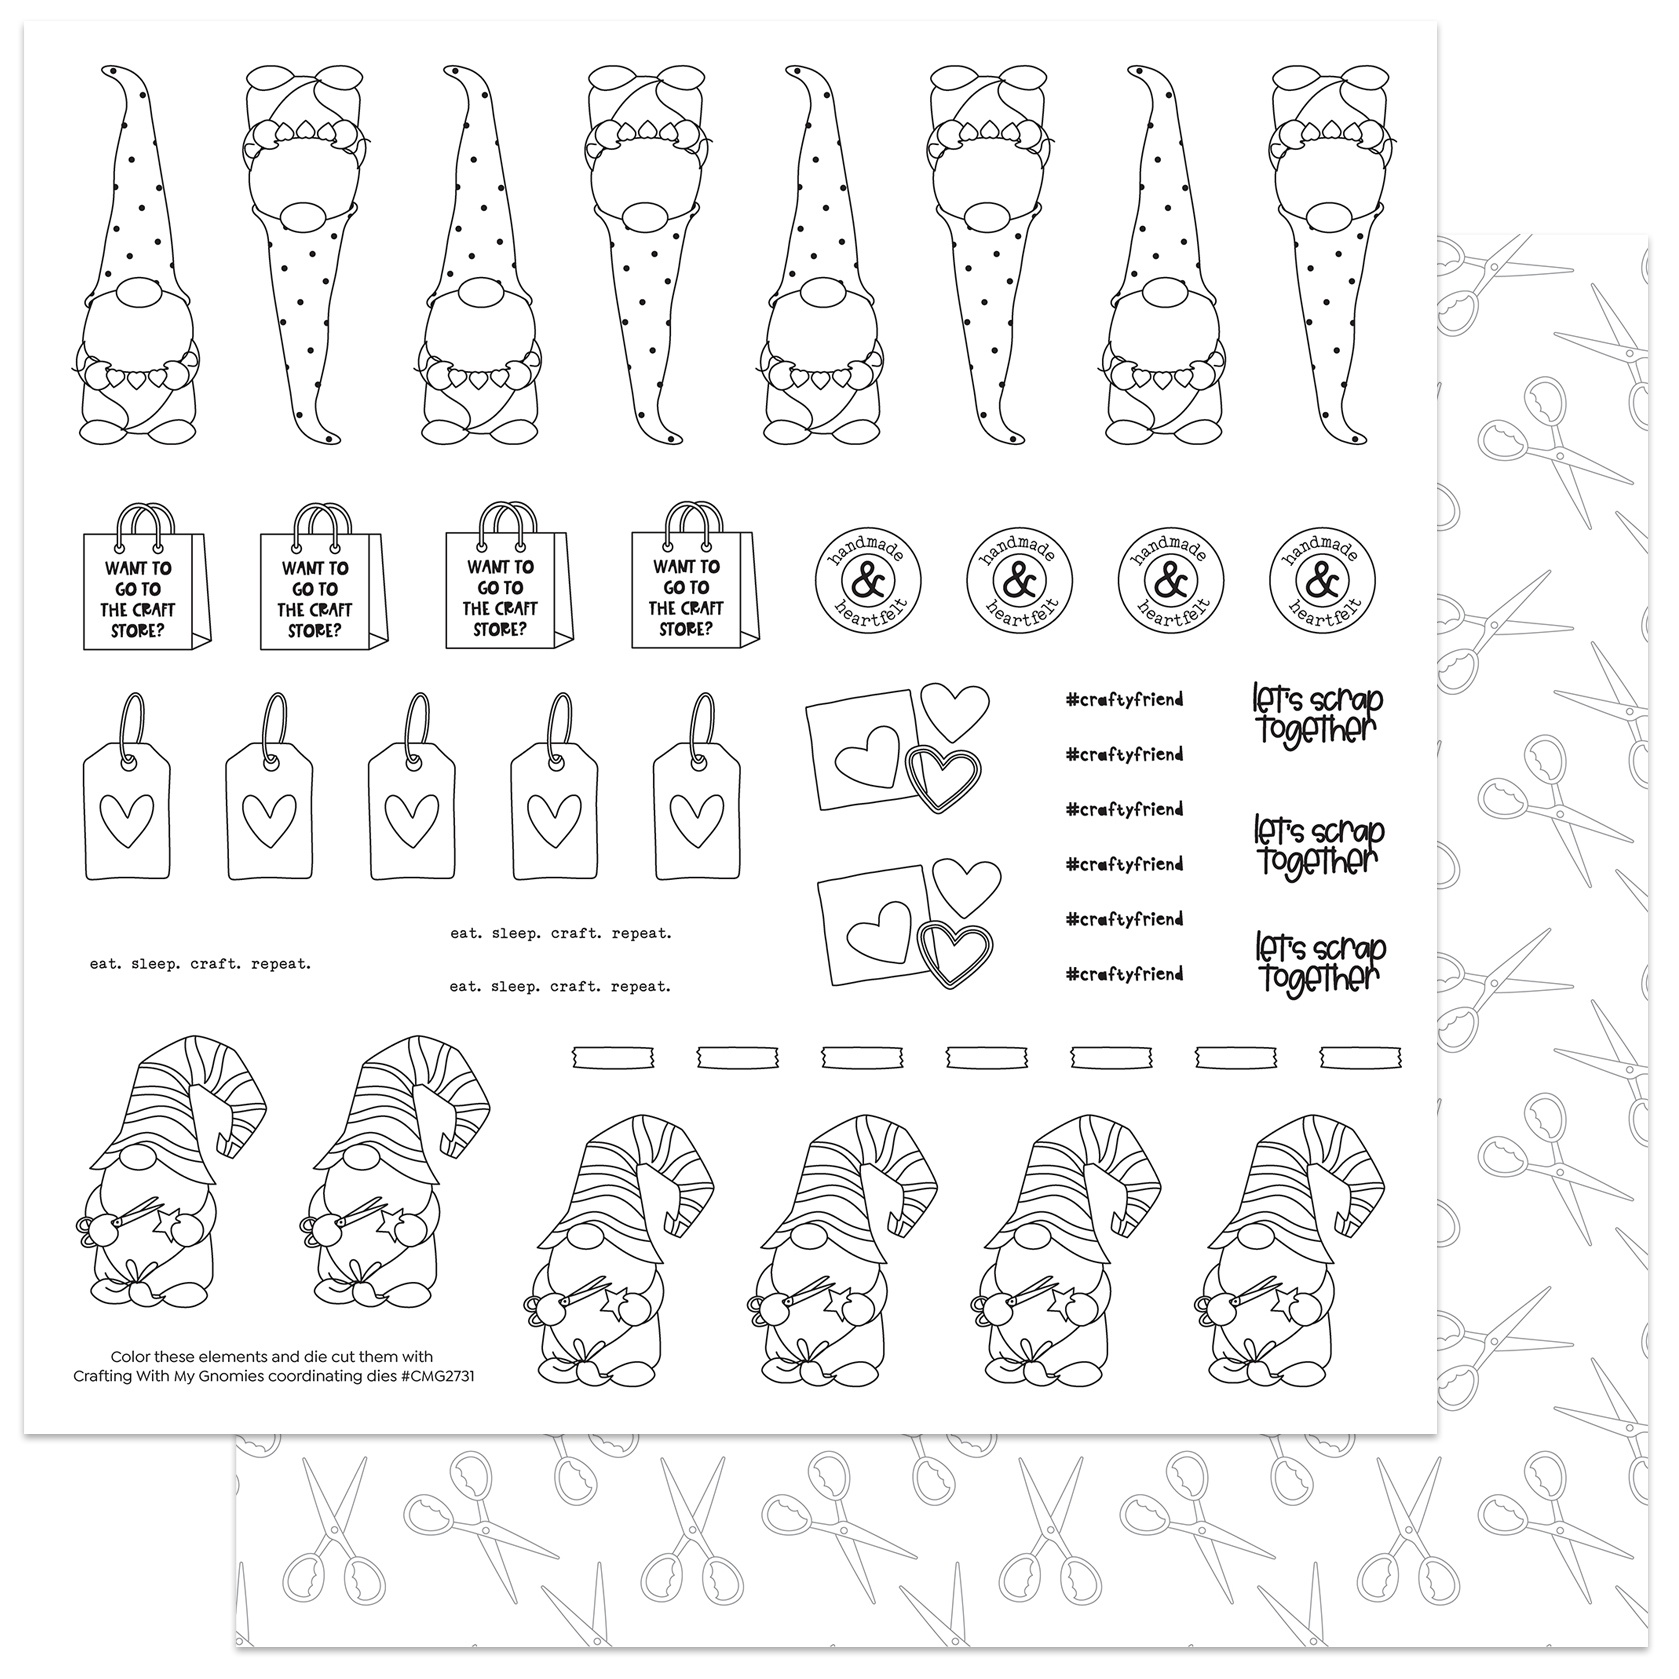 Crafting With My Gnomies- Color Me Sheet For Dies